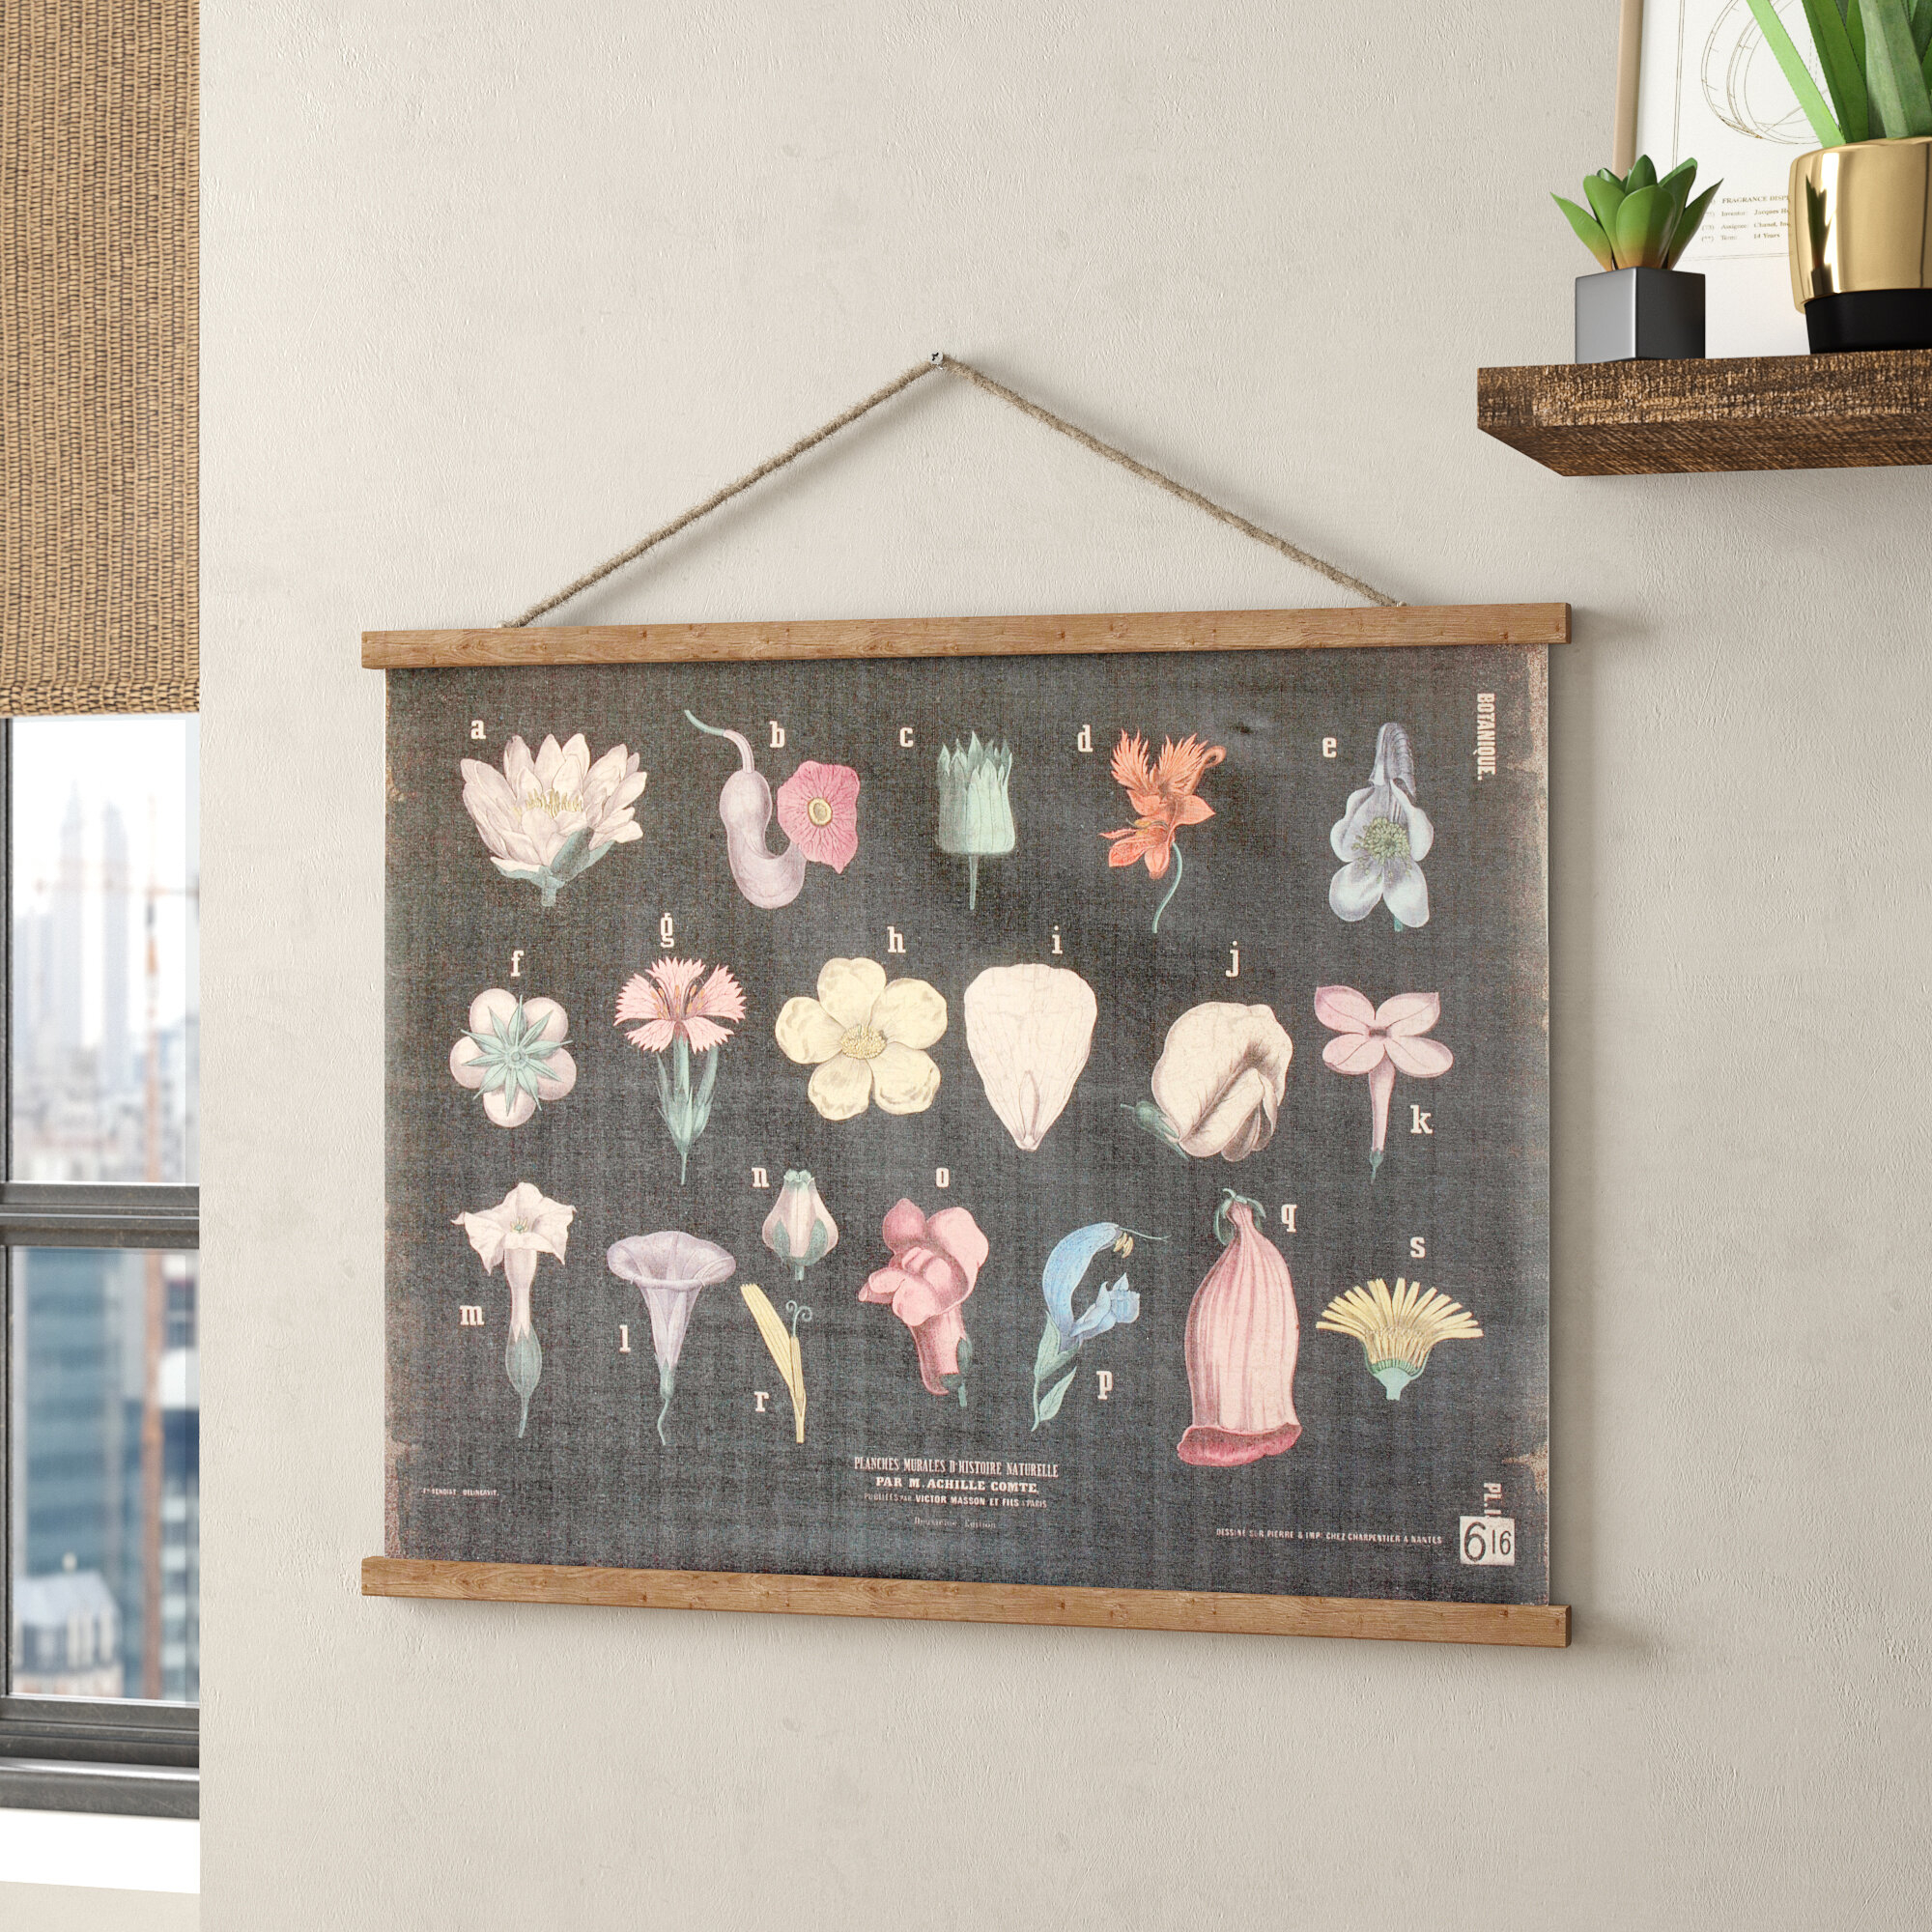 Rod Tapestries You'll Love In 2021 | Wayfair With Regard To 2018 Blended Fabric Saber Wall Hangings With Rod (View 6 of 20)